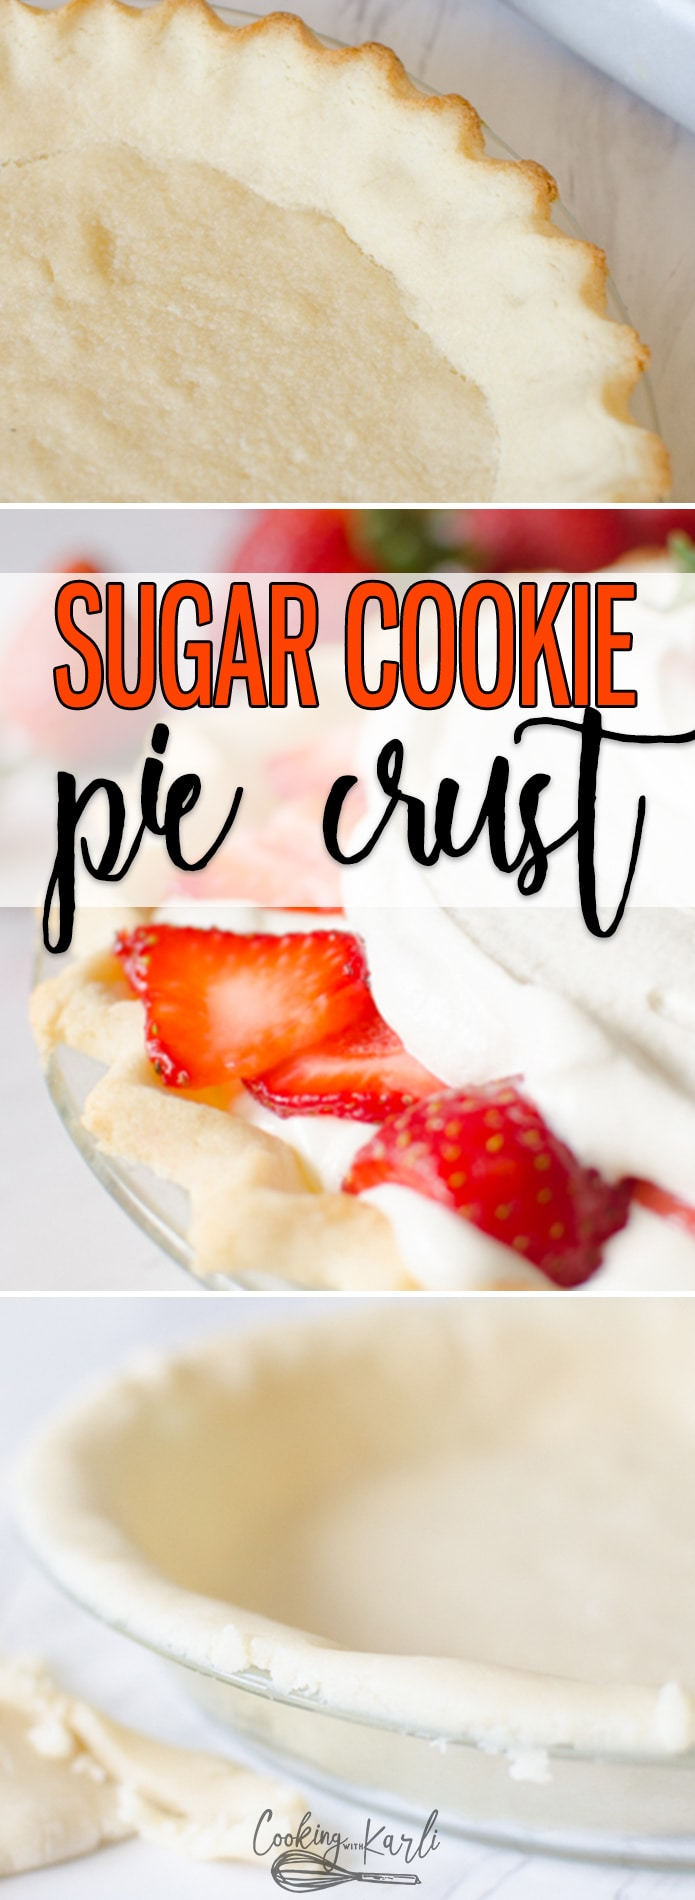 Sugar Cookie Pie Crust is a sweet, chewy alternative to any pie crust. The from-scratch sugar cookie dough comes together in just a few minutes with only a handful of ingredients. This crust will take your favorite pie from good to AMAZING! |Cooking with Karli| #piecrust #dessertpie #crust #fromscratch #homemade